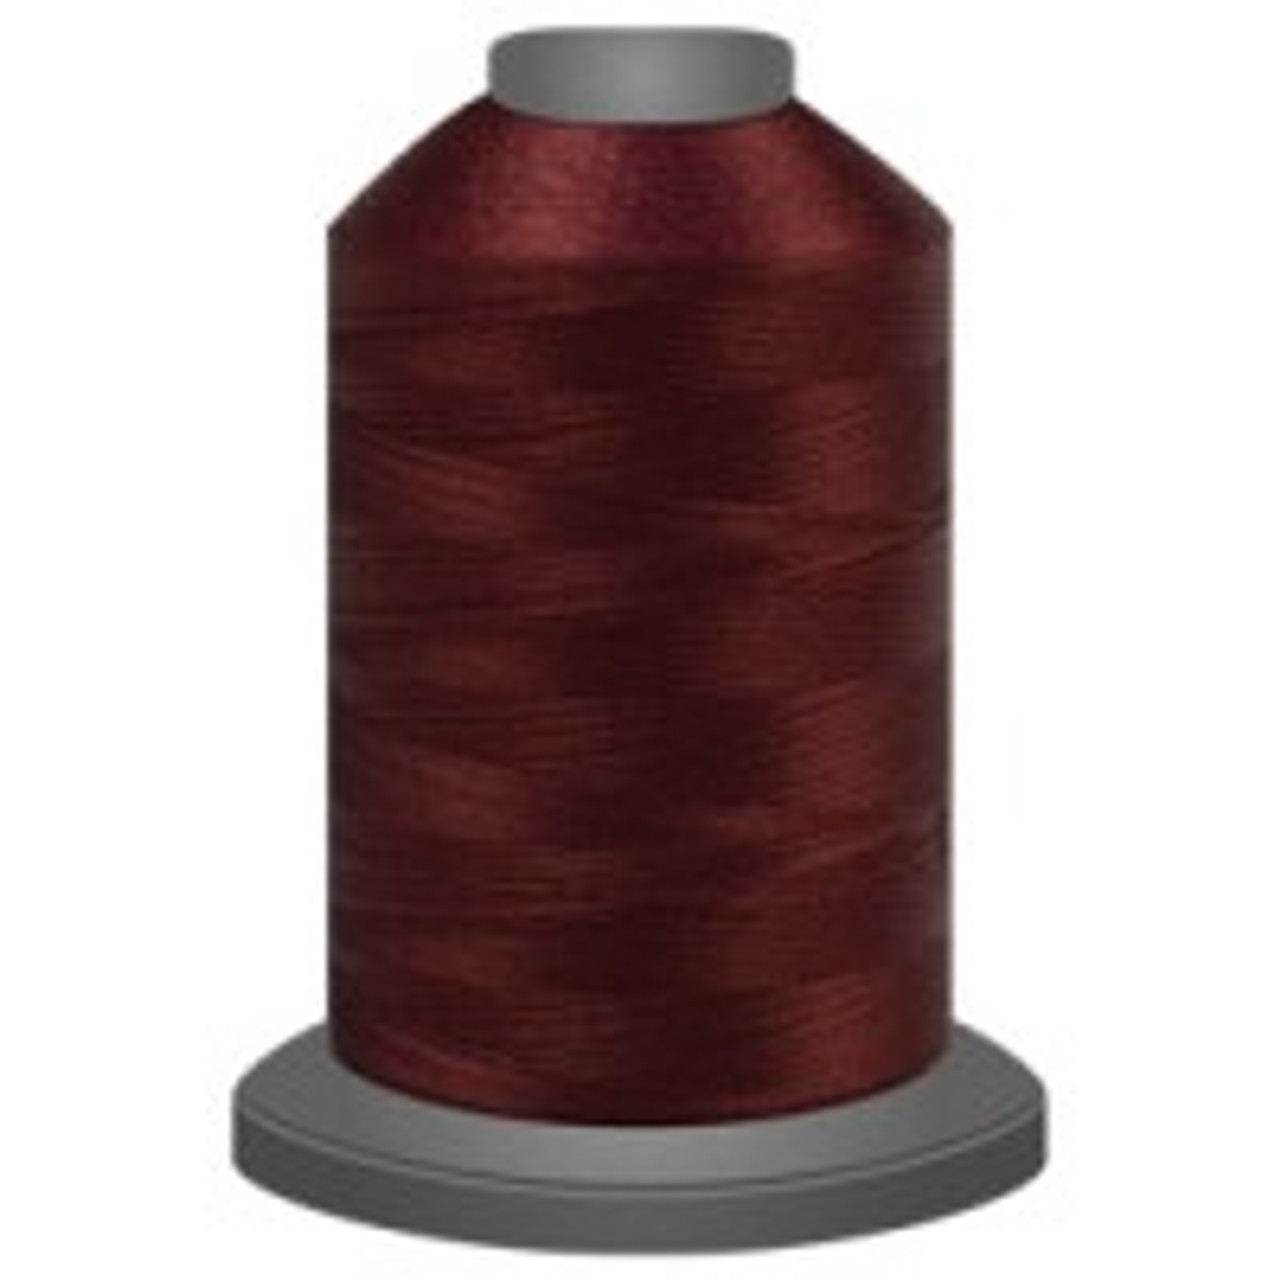 Cabernet - Polyester - Thread - Trilobal - Glide - 40 wt This thread is strong and maintains consistent tension.  This results in less thread breakage, consistent stitch formation, resulting in fewer machine stops.  Made from colorfast polyester. Complete and uniform fill, provides a beautiful look, as if the thread melts into the fabric. Glide runs virtually lint free through your machine's tensioners and needle. Mini Spool - 40 wt - 1100 yds King Spool - 40 wt - 5500 yds Available in 269 colors.